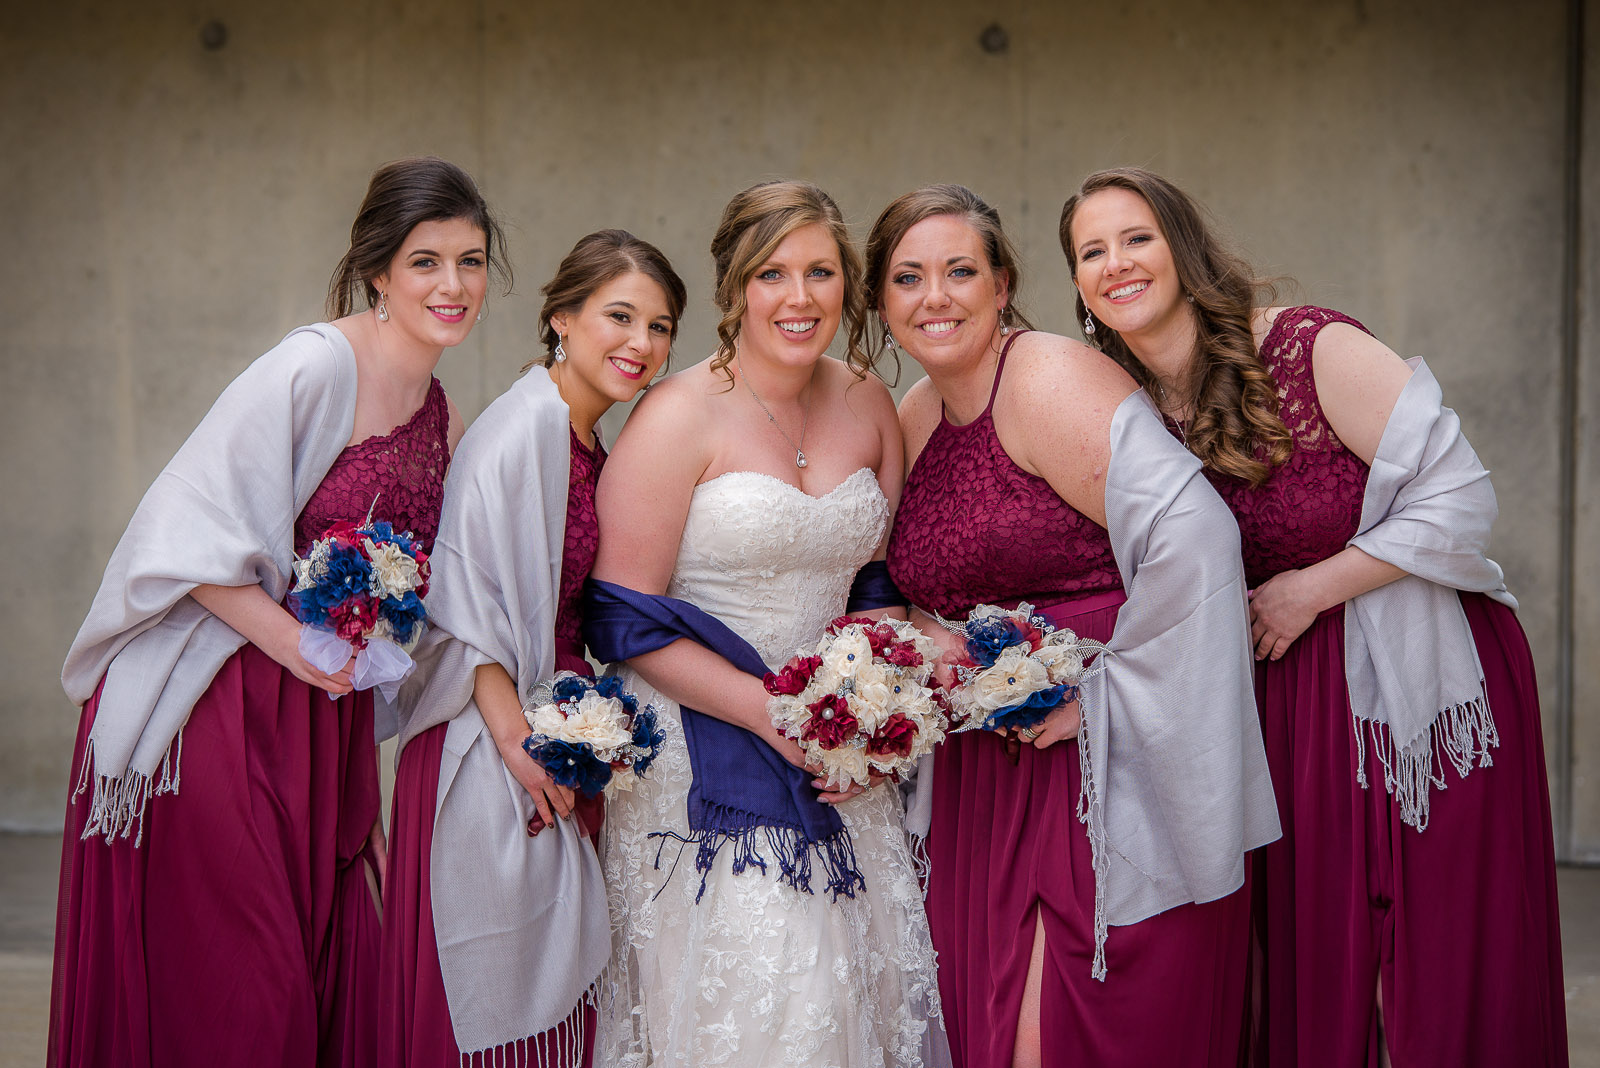 Eric_and_Christy_Photography_Blog_Wedding_Karen_Nick-14